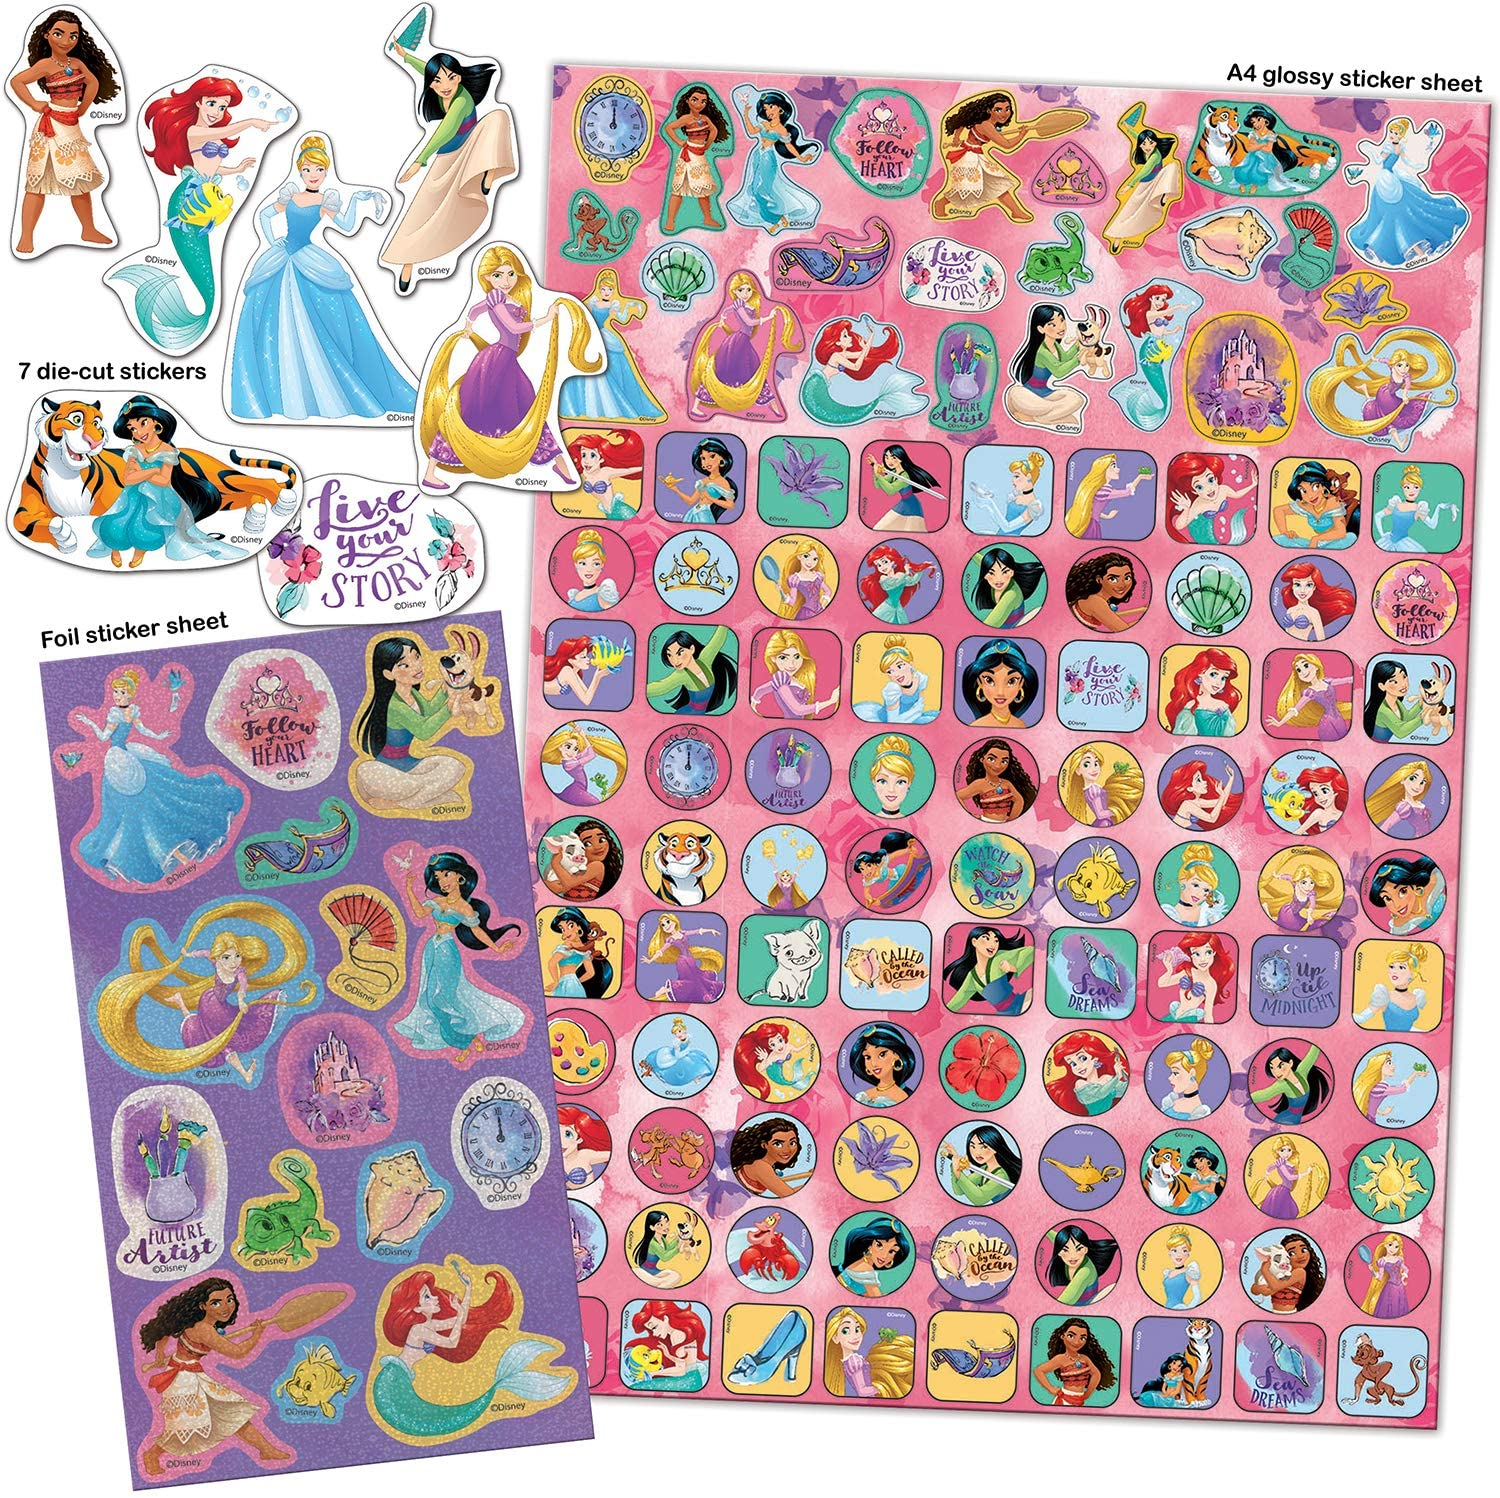 Paper Projects 9124370 Disney Princess Mega paquete de pegatinas, color rosa y morado